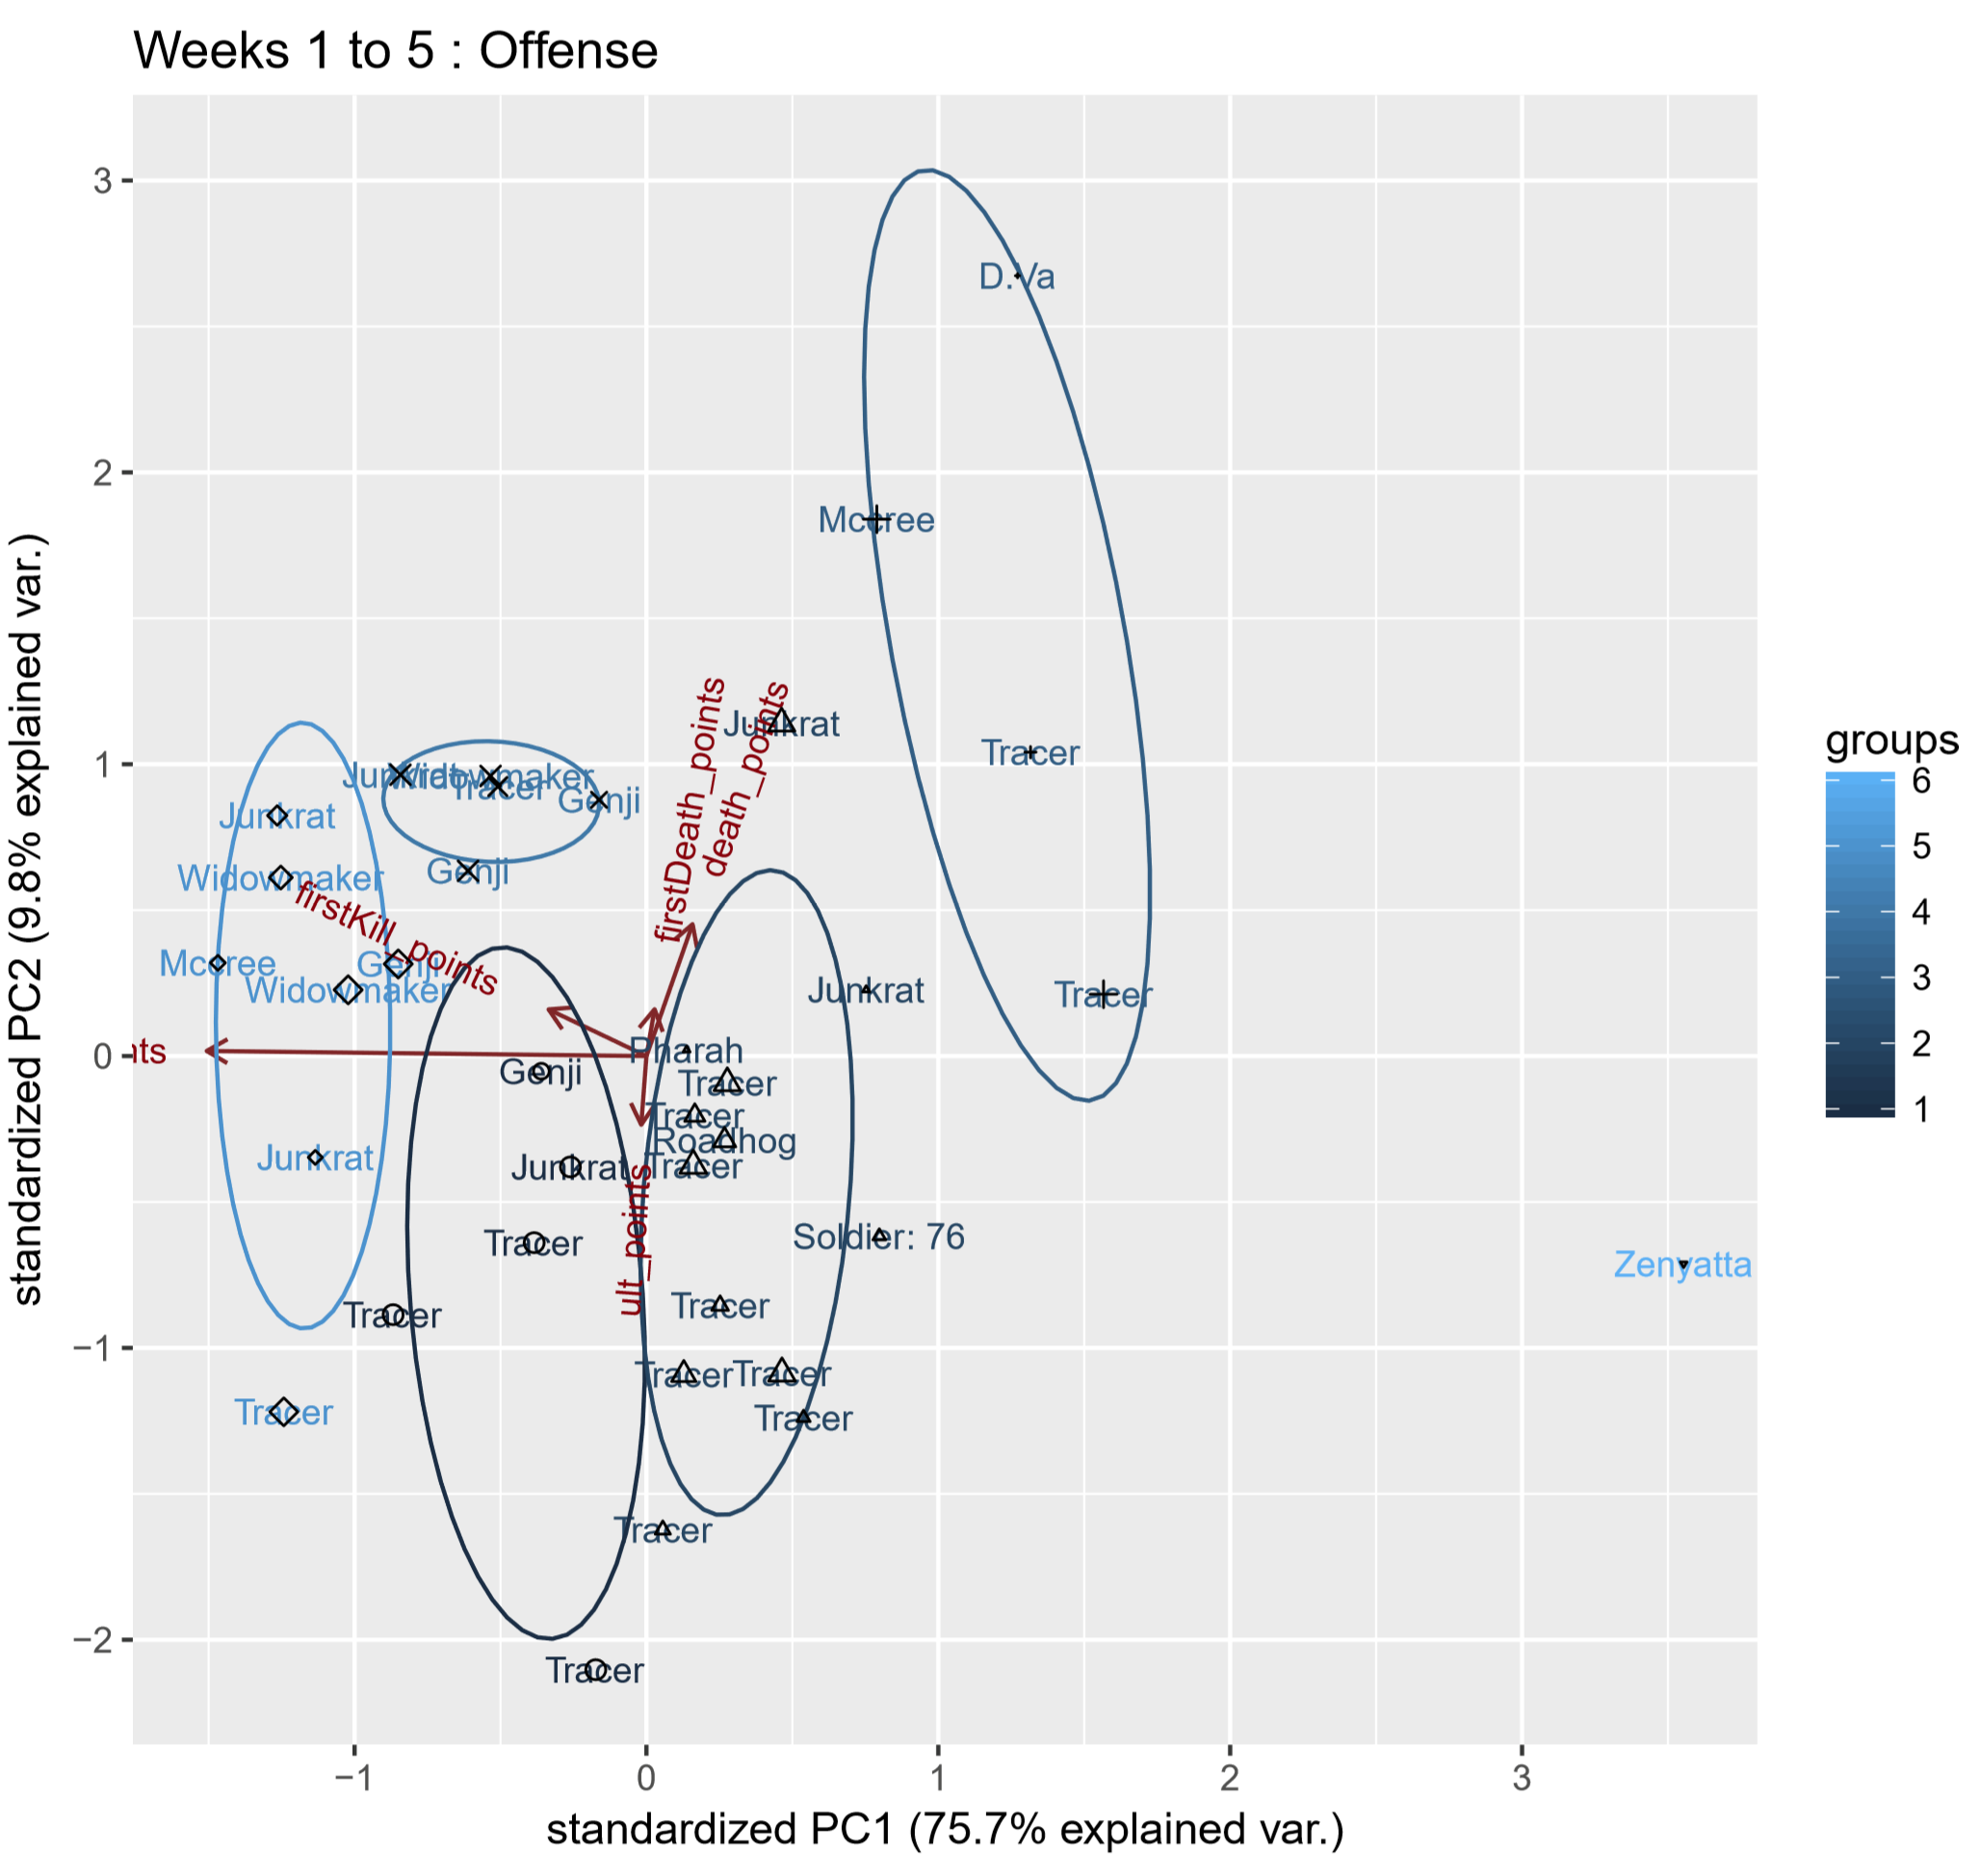 Figure 2. Weeks 1 to 5 offense player principal component analysis biplot, labels by most-played-hero by player.